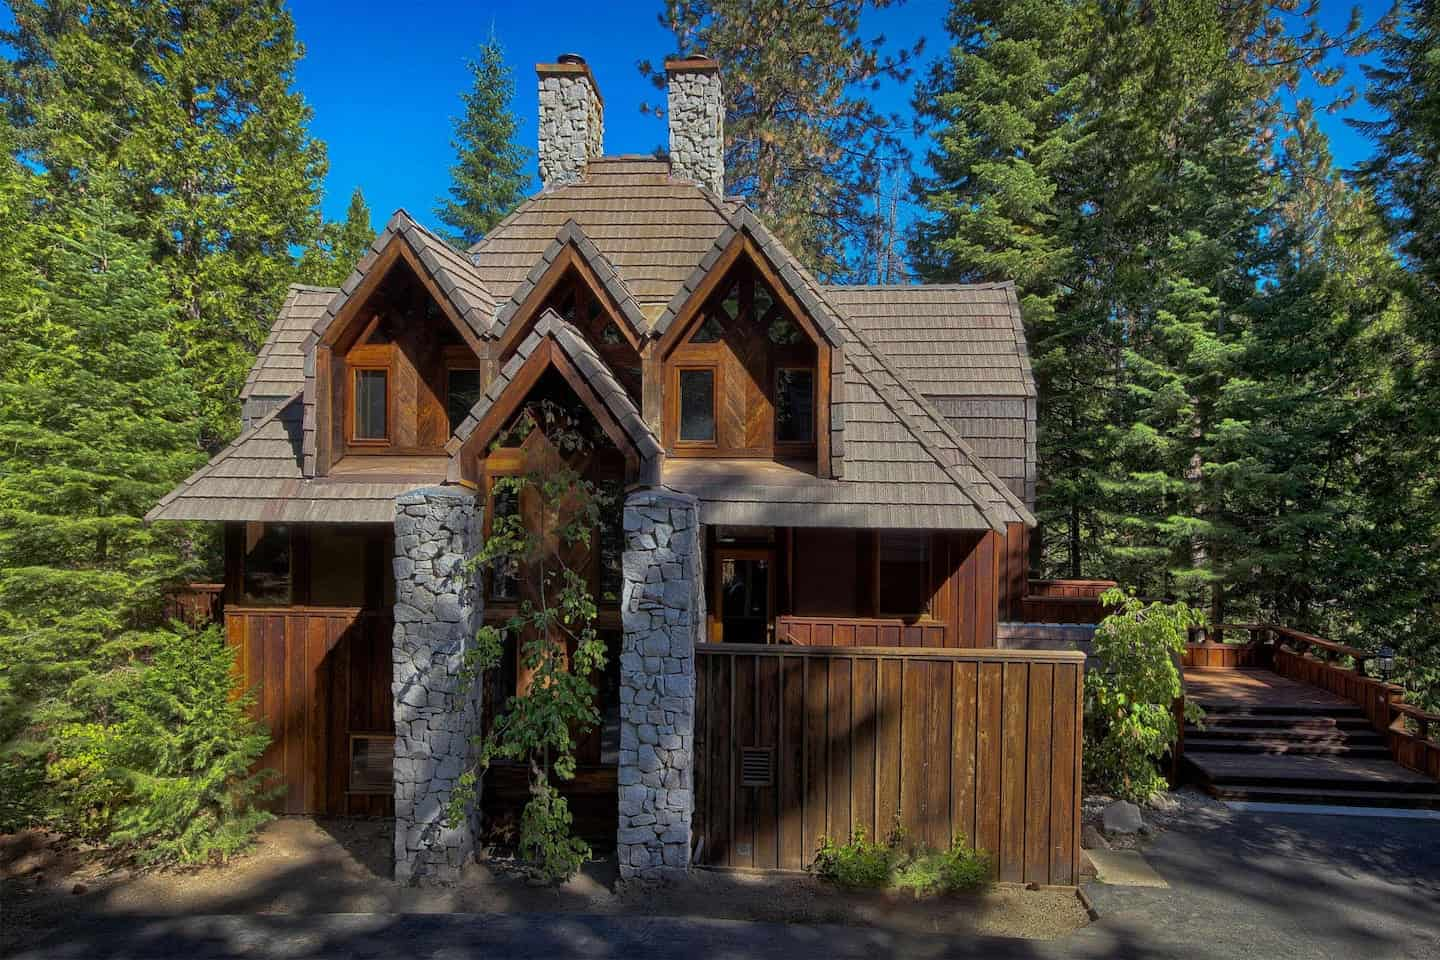 Image of Airbnb rental near Yosemite National Park